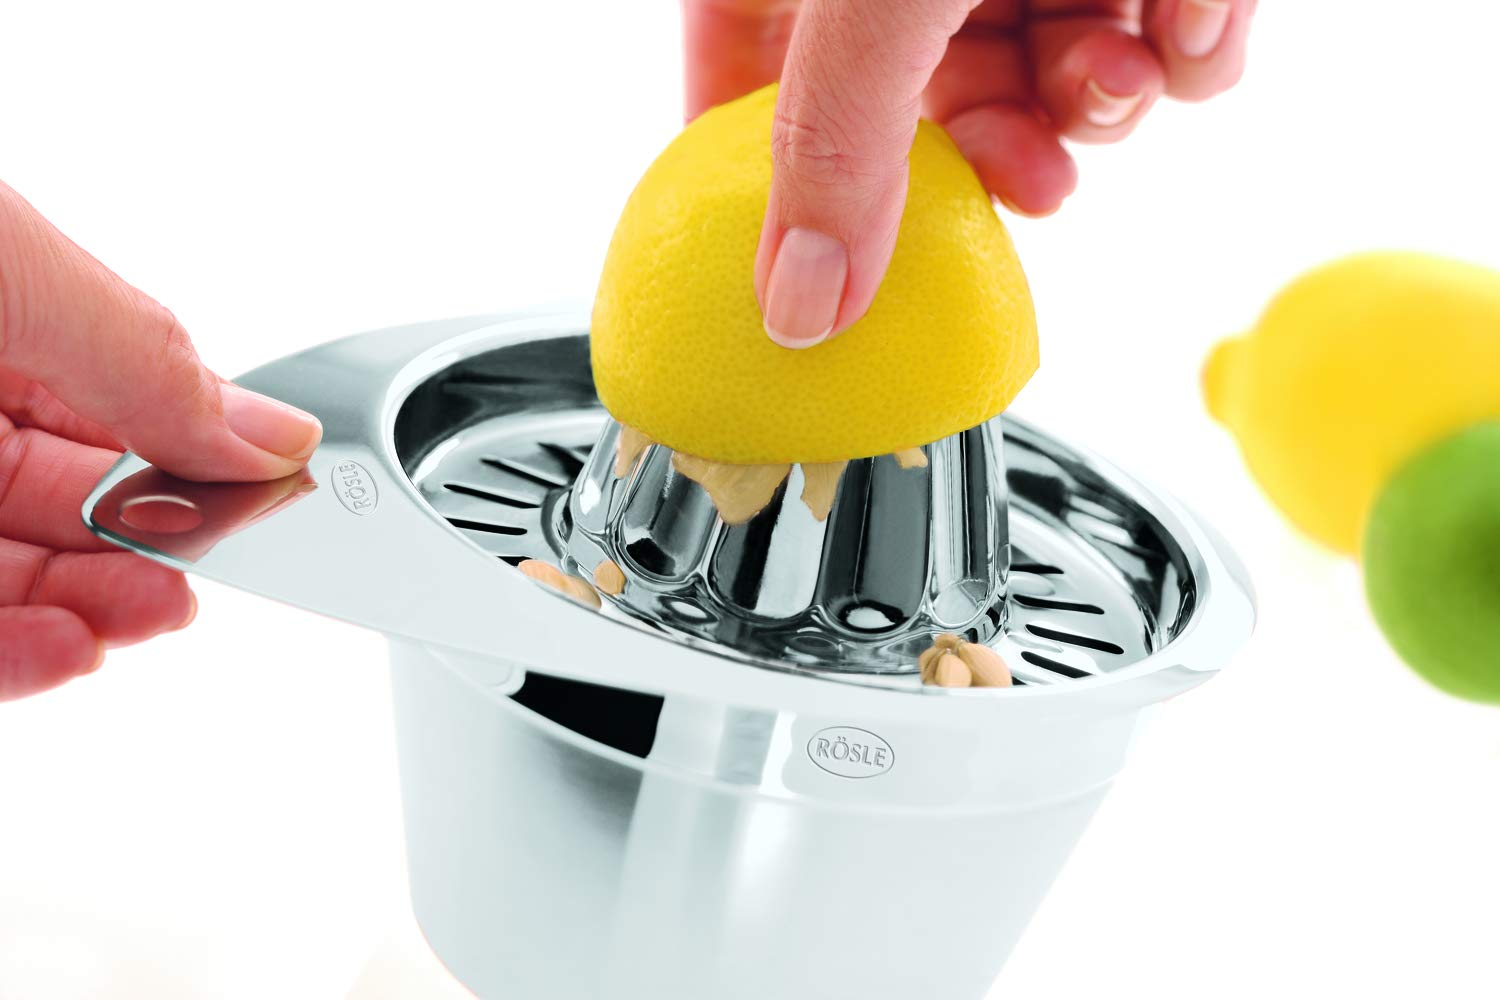 Fine StainlessLUX Houseware for Your Home StainlessLUX 73601 Brilliant Stainless Steel Juicer//Fruit Squeezer